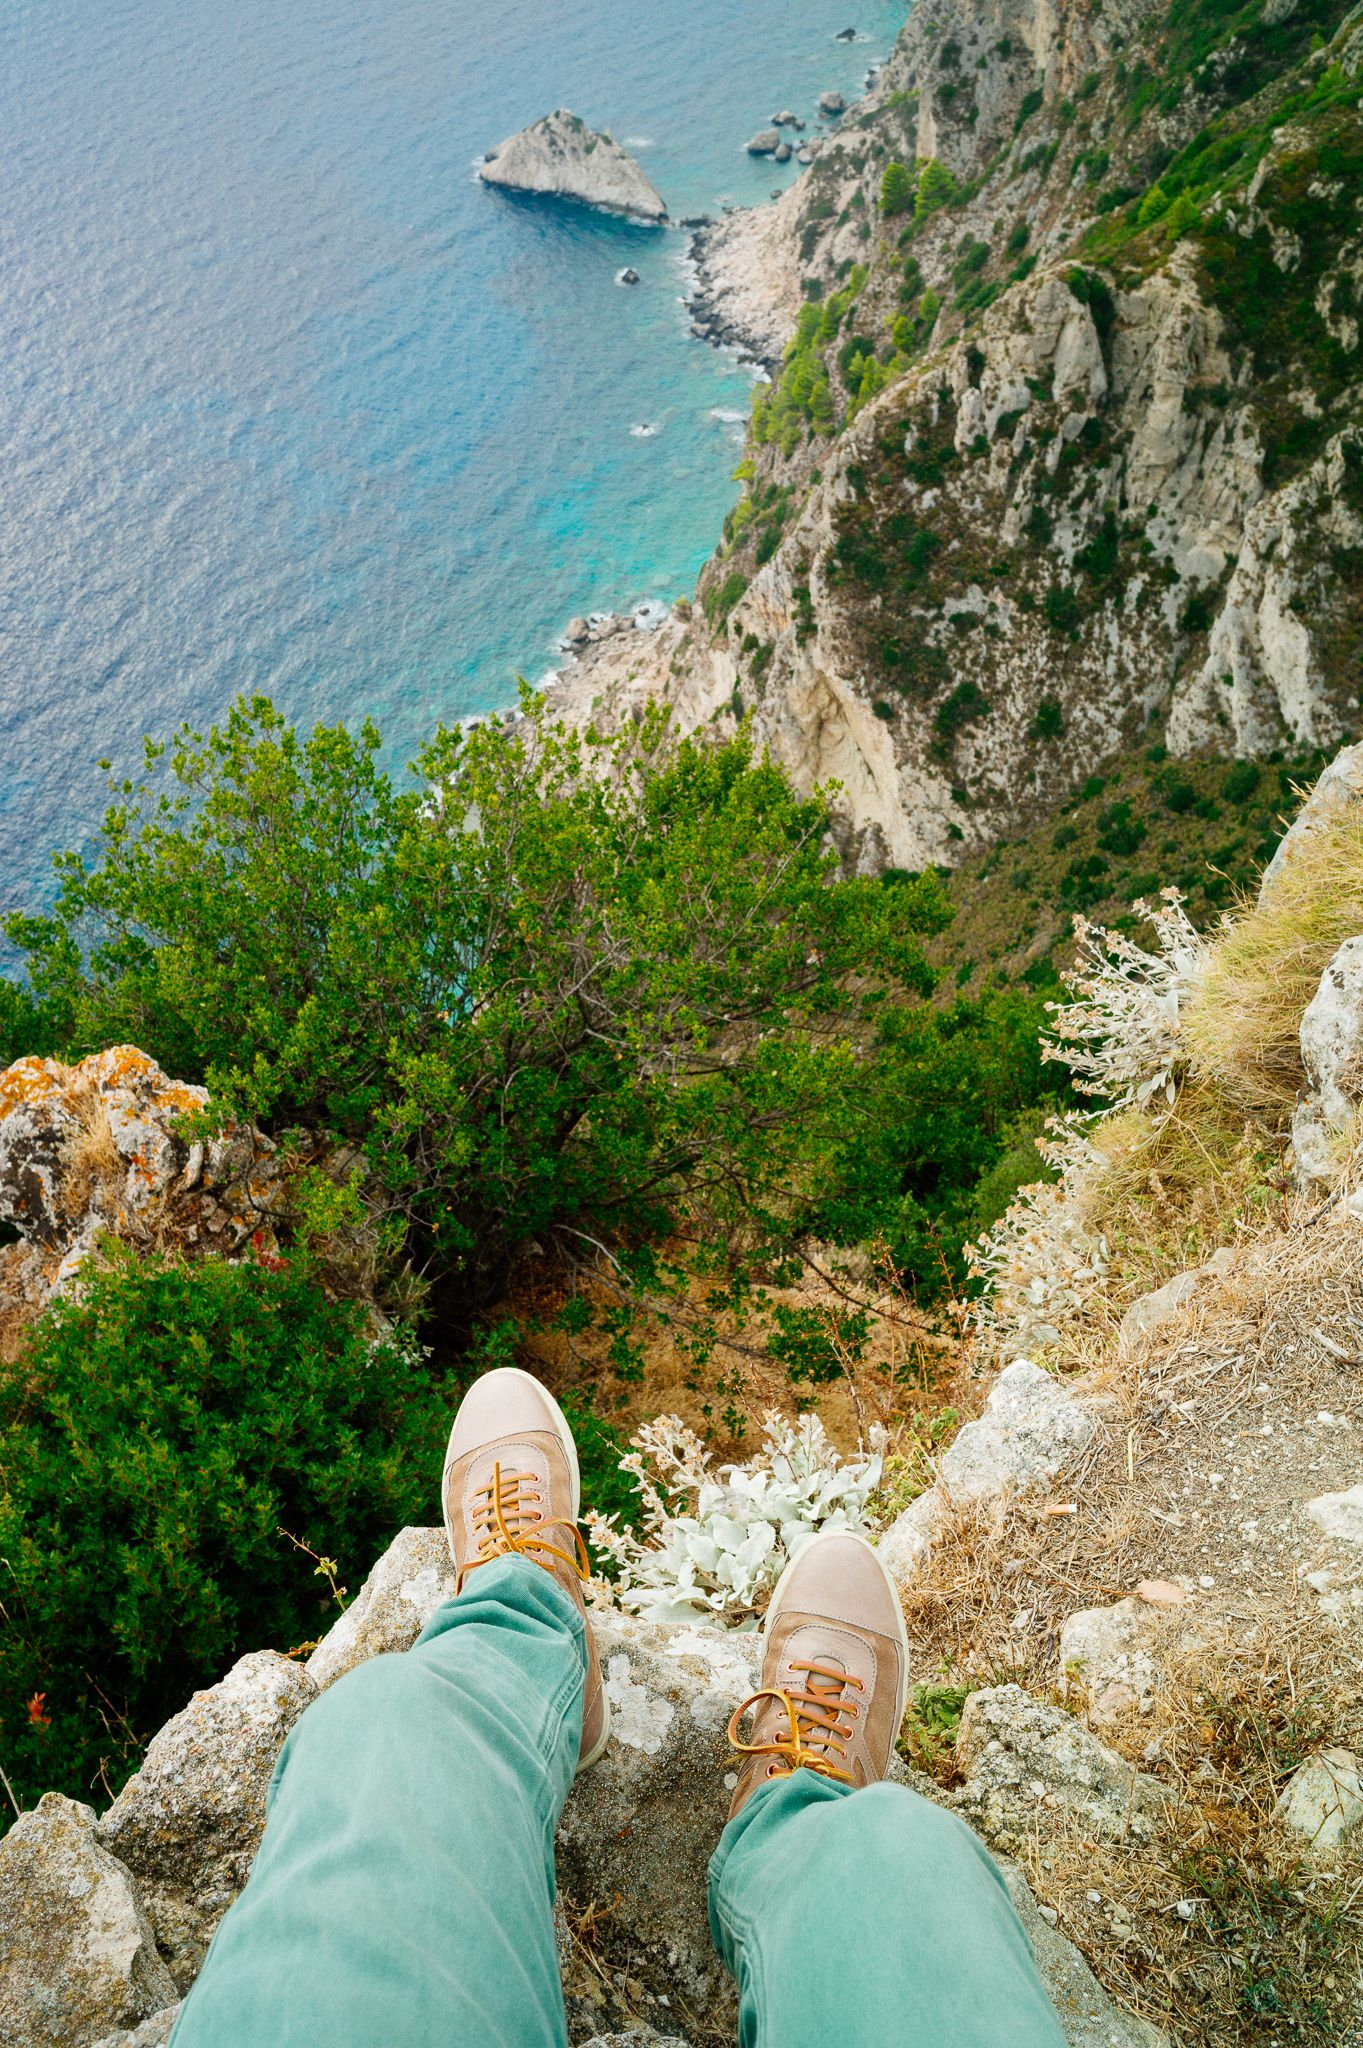 greece_corfu_28mm_elmarit_asph_on_edge_cliff